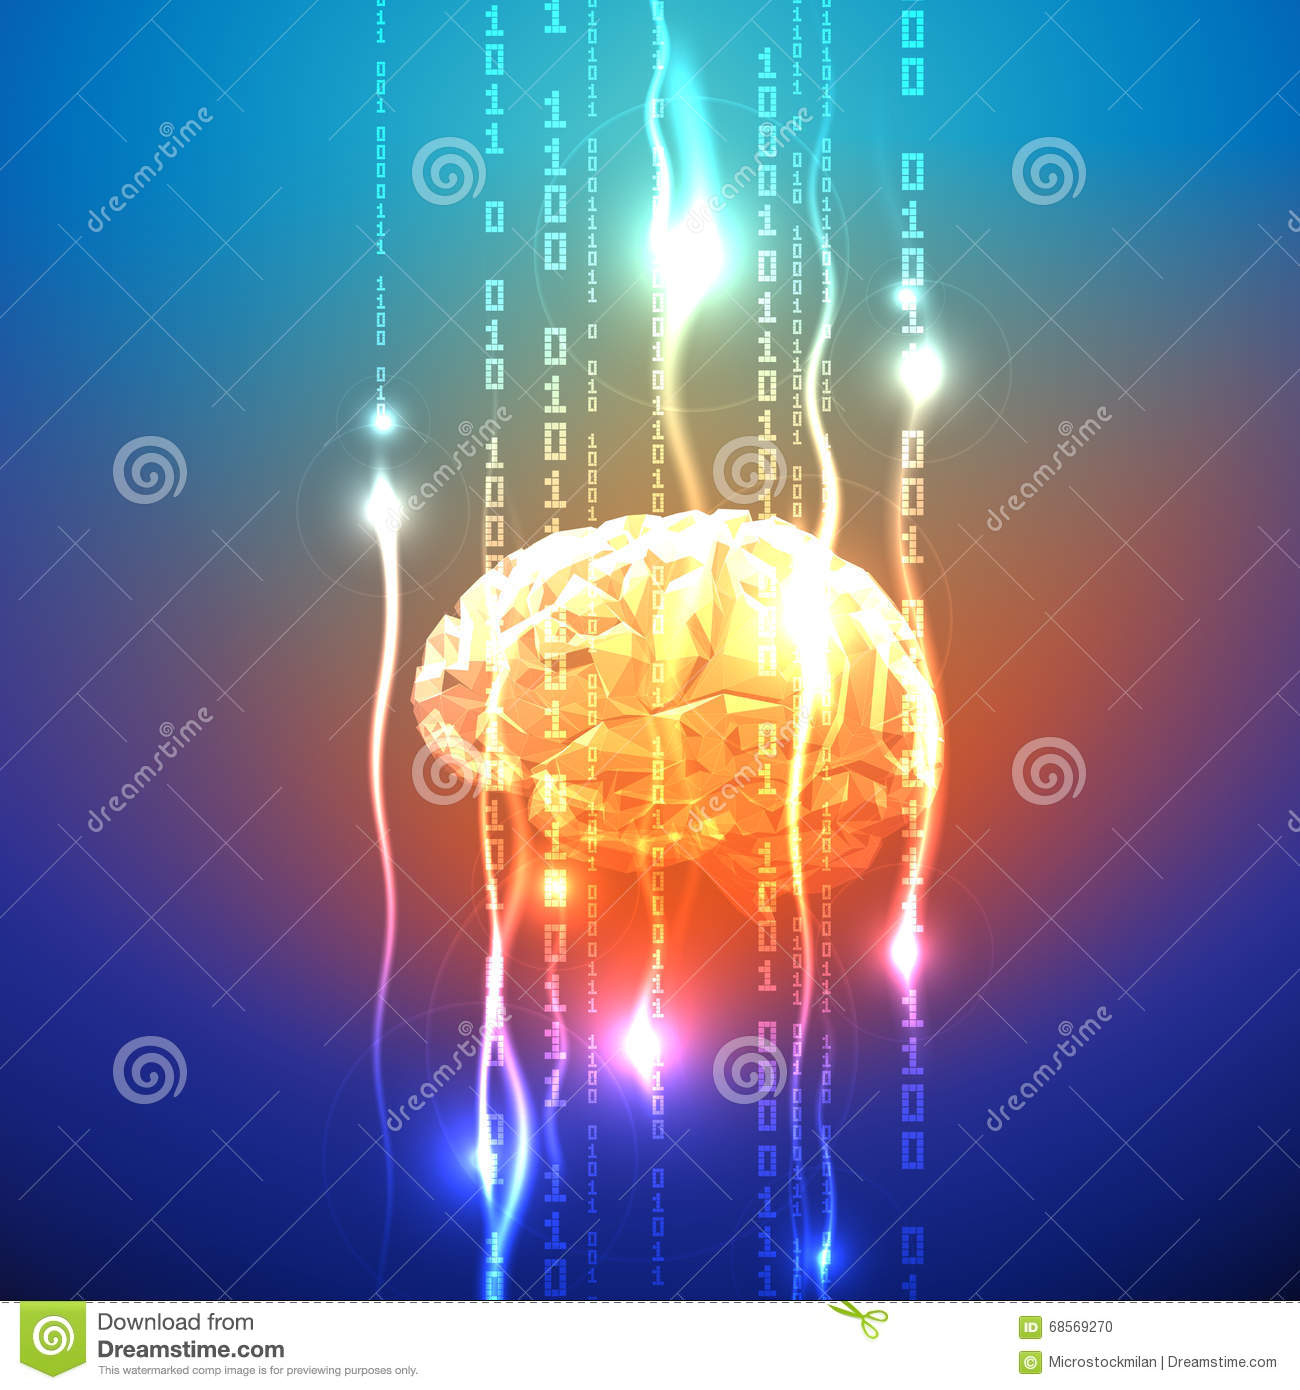 Abstract Concept Of Human Brain Activity Stock Vector